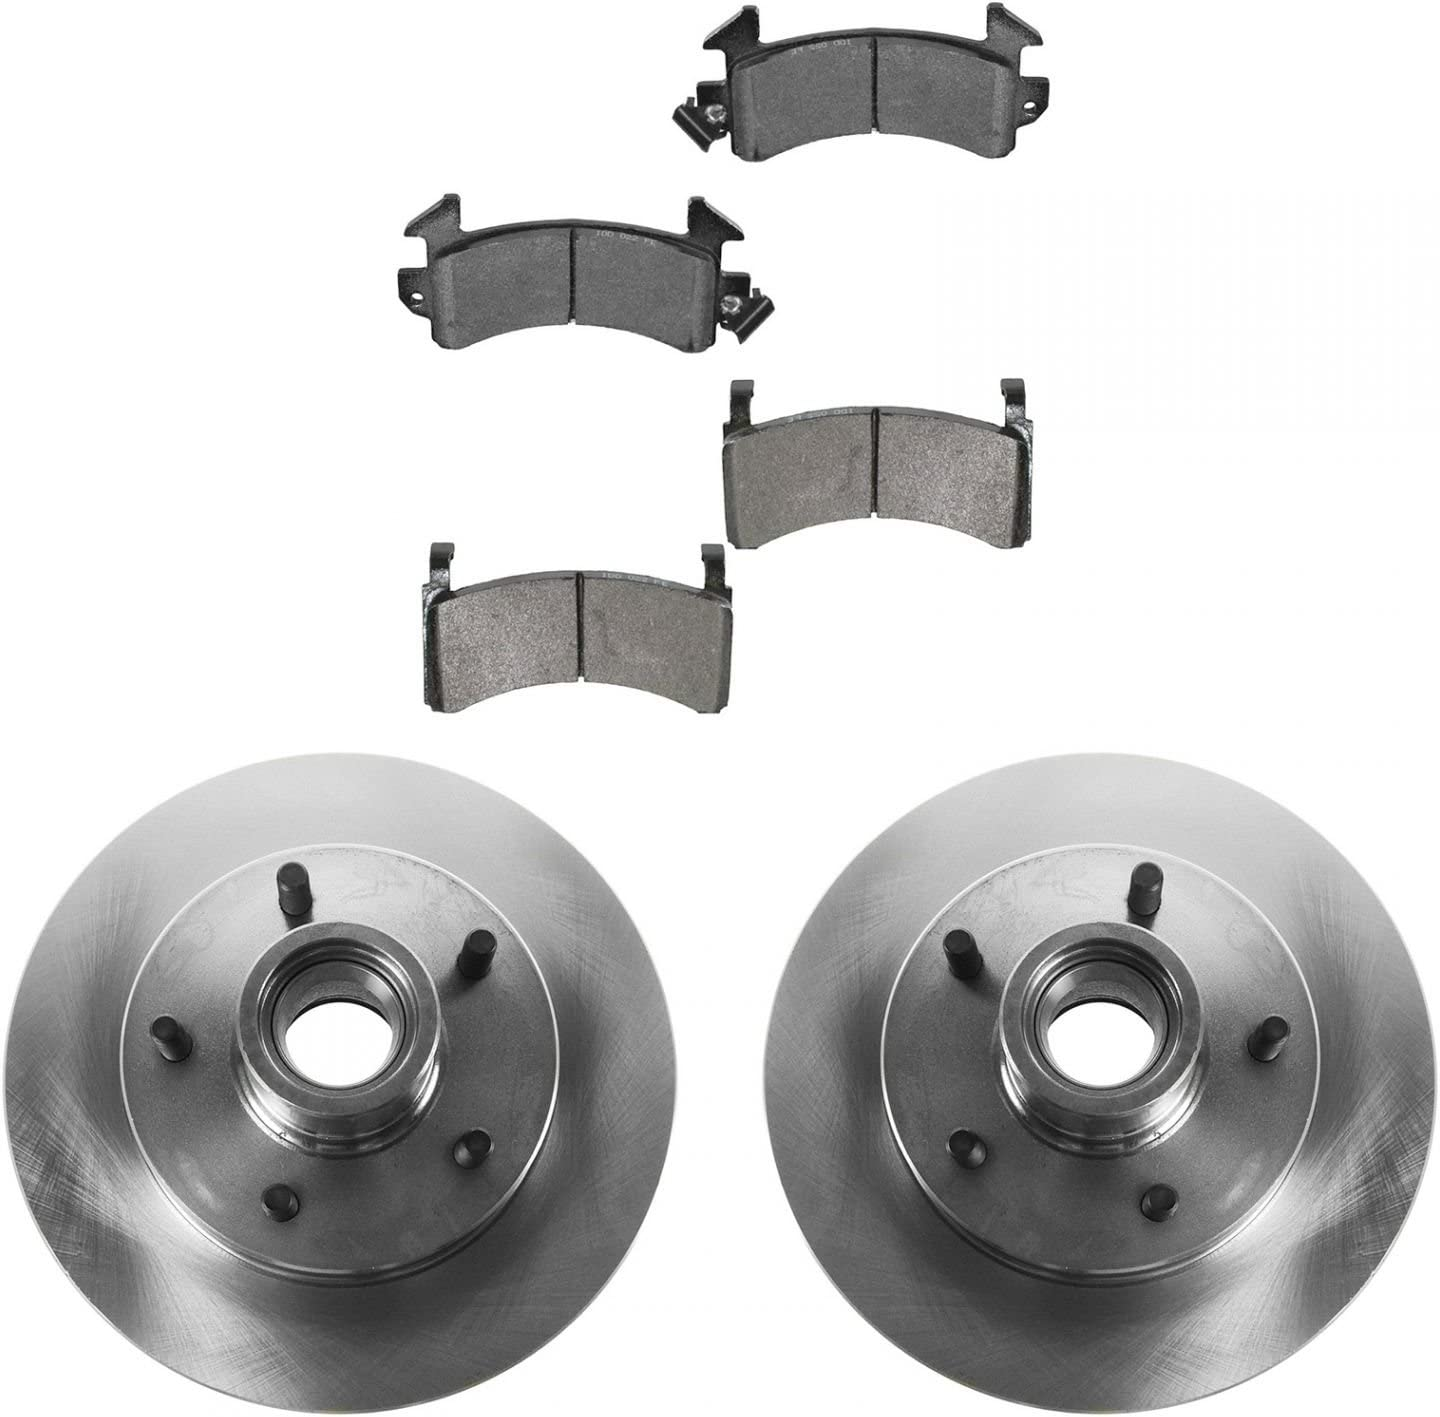 1998 1999 Chevy Blazer 2WD//4WD Rotors Ceramic Pads F OE Replacement